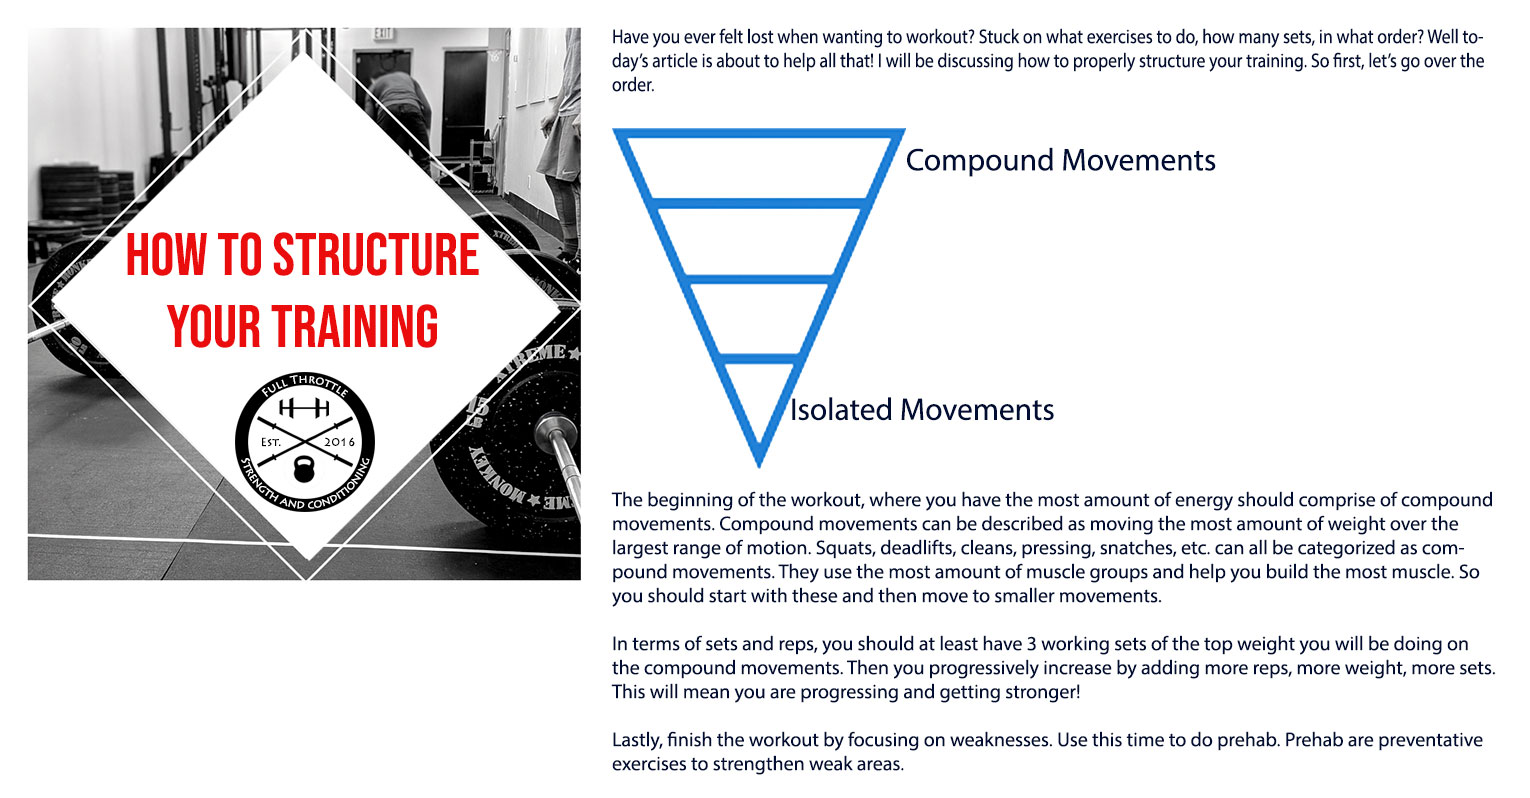 How-To-Structure-Your-Training.jpg